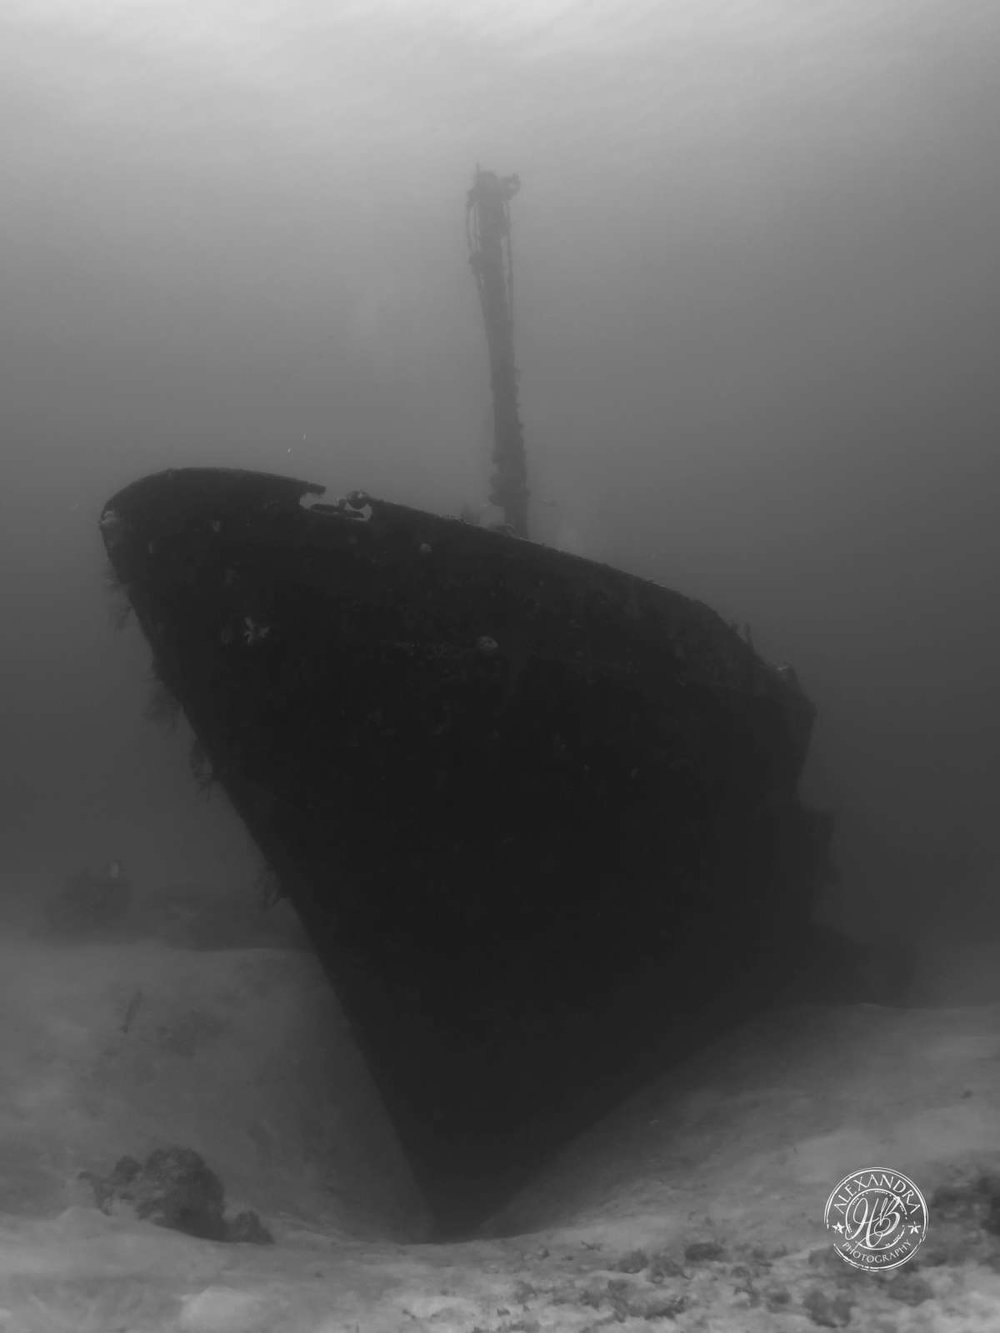 El Aguila Wreck Ghost ship b&w (May '16) (1 of 1).jpg